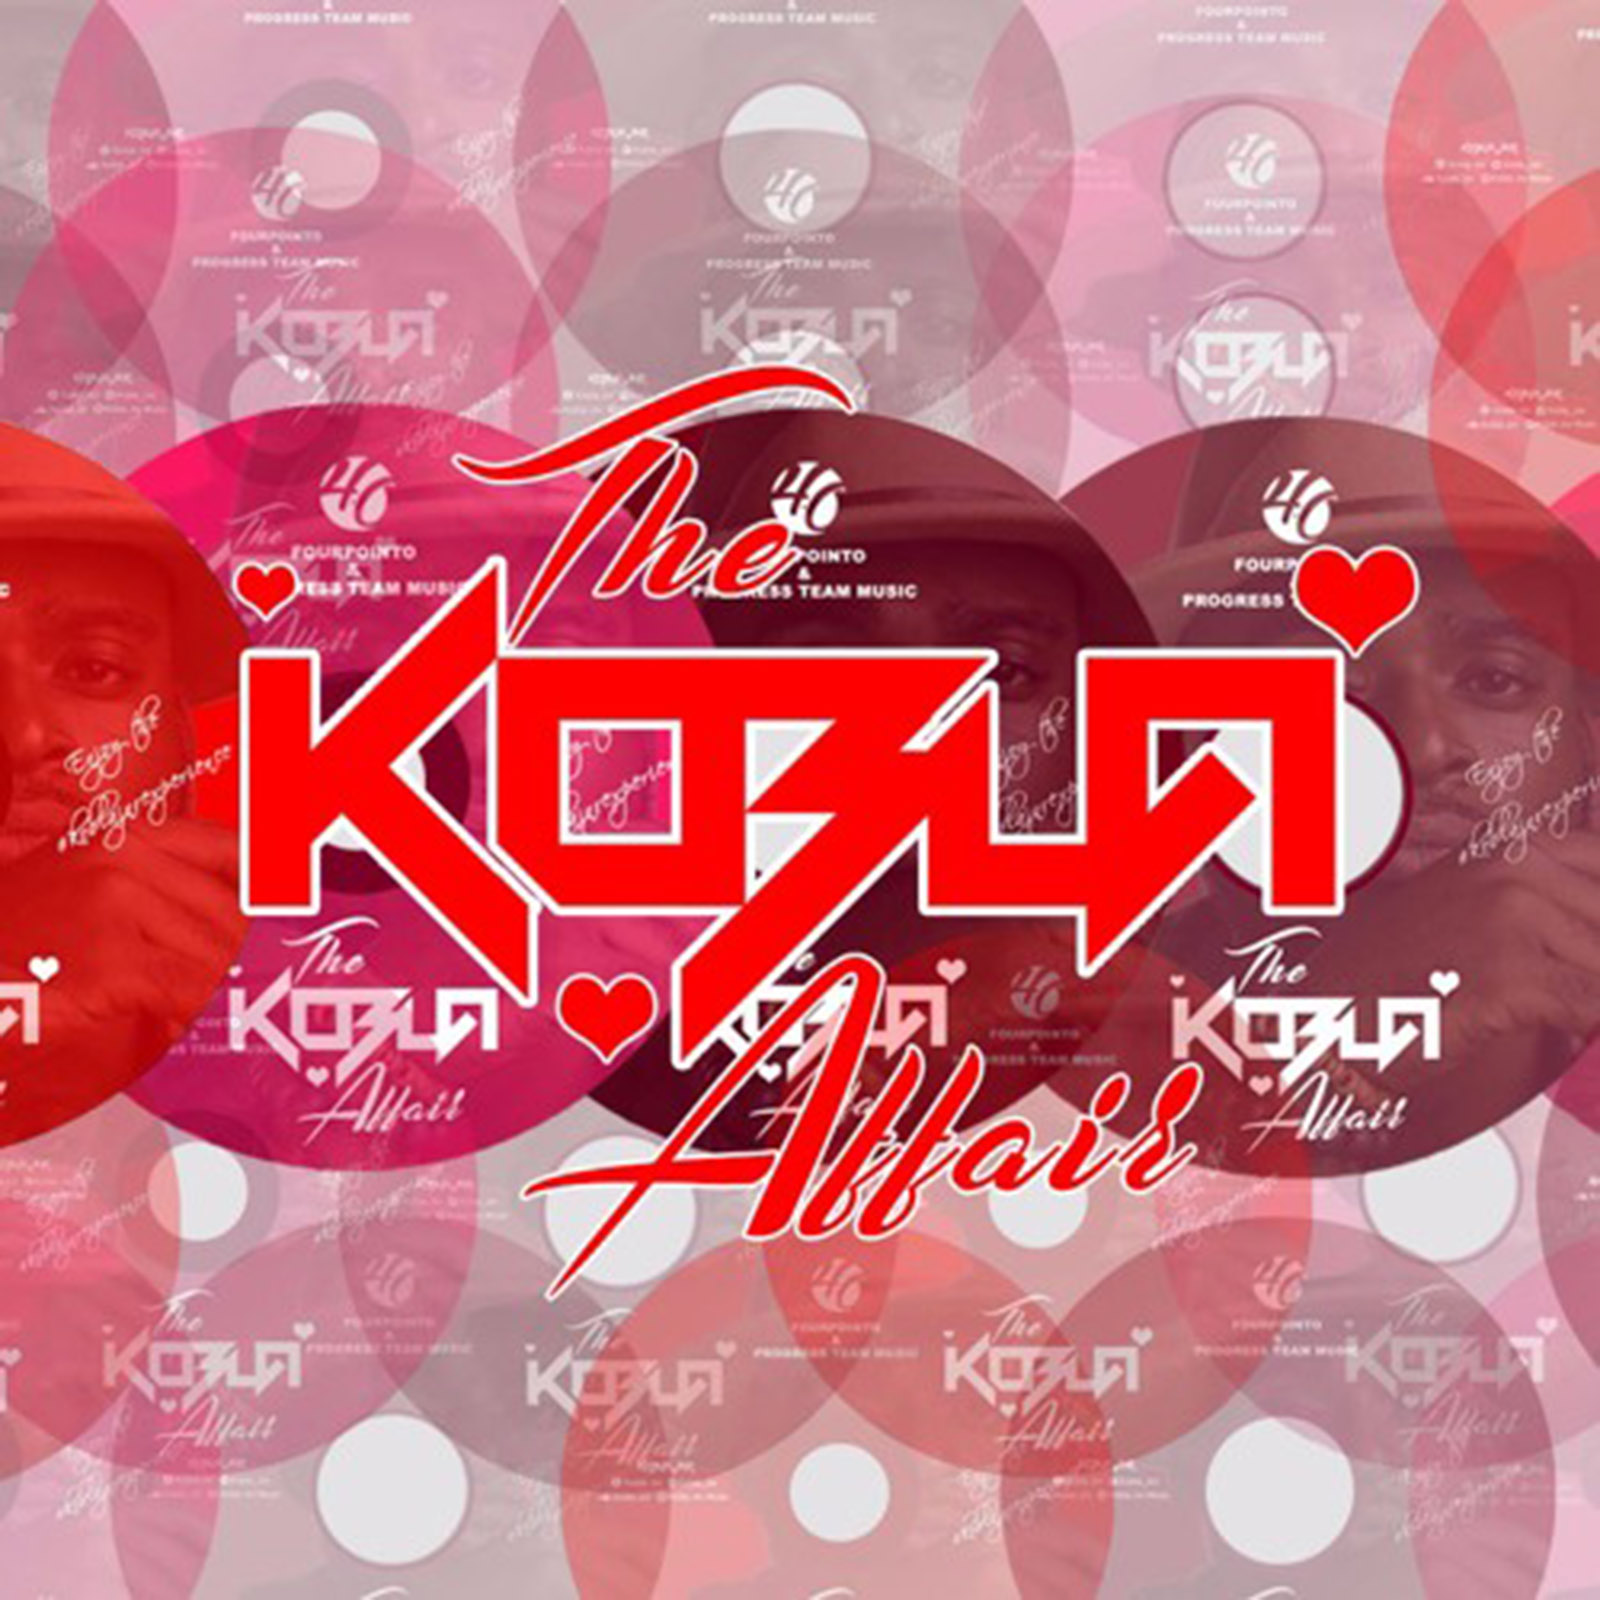 The Kobla Affair by Kobla Jnr